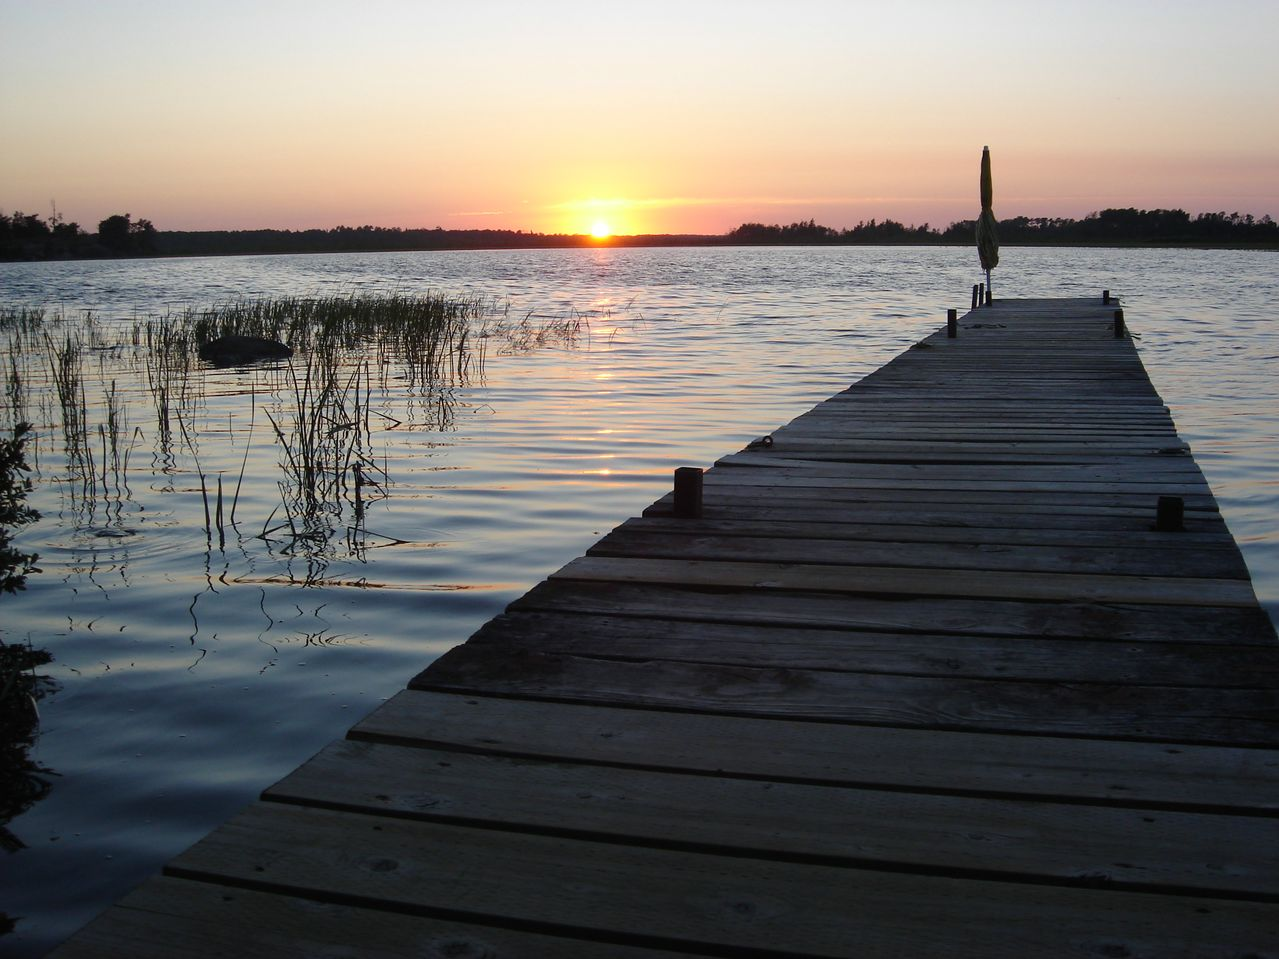 6 Mosquito Tips to Remember When Closing the Cottage - Featured Image